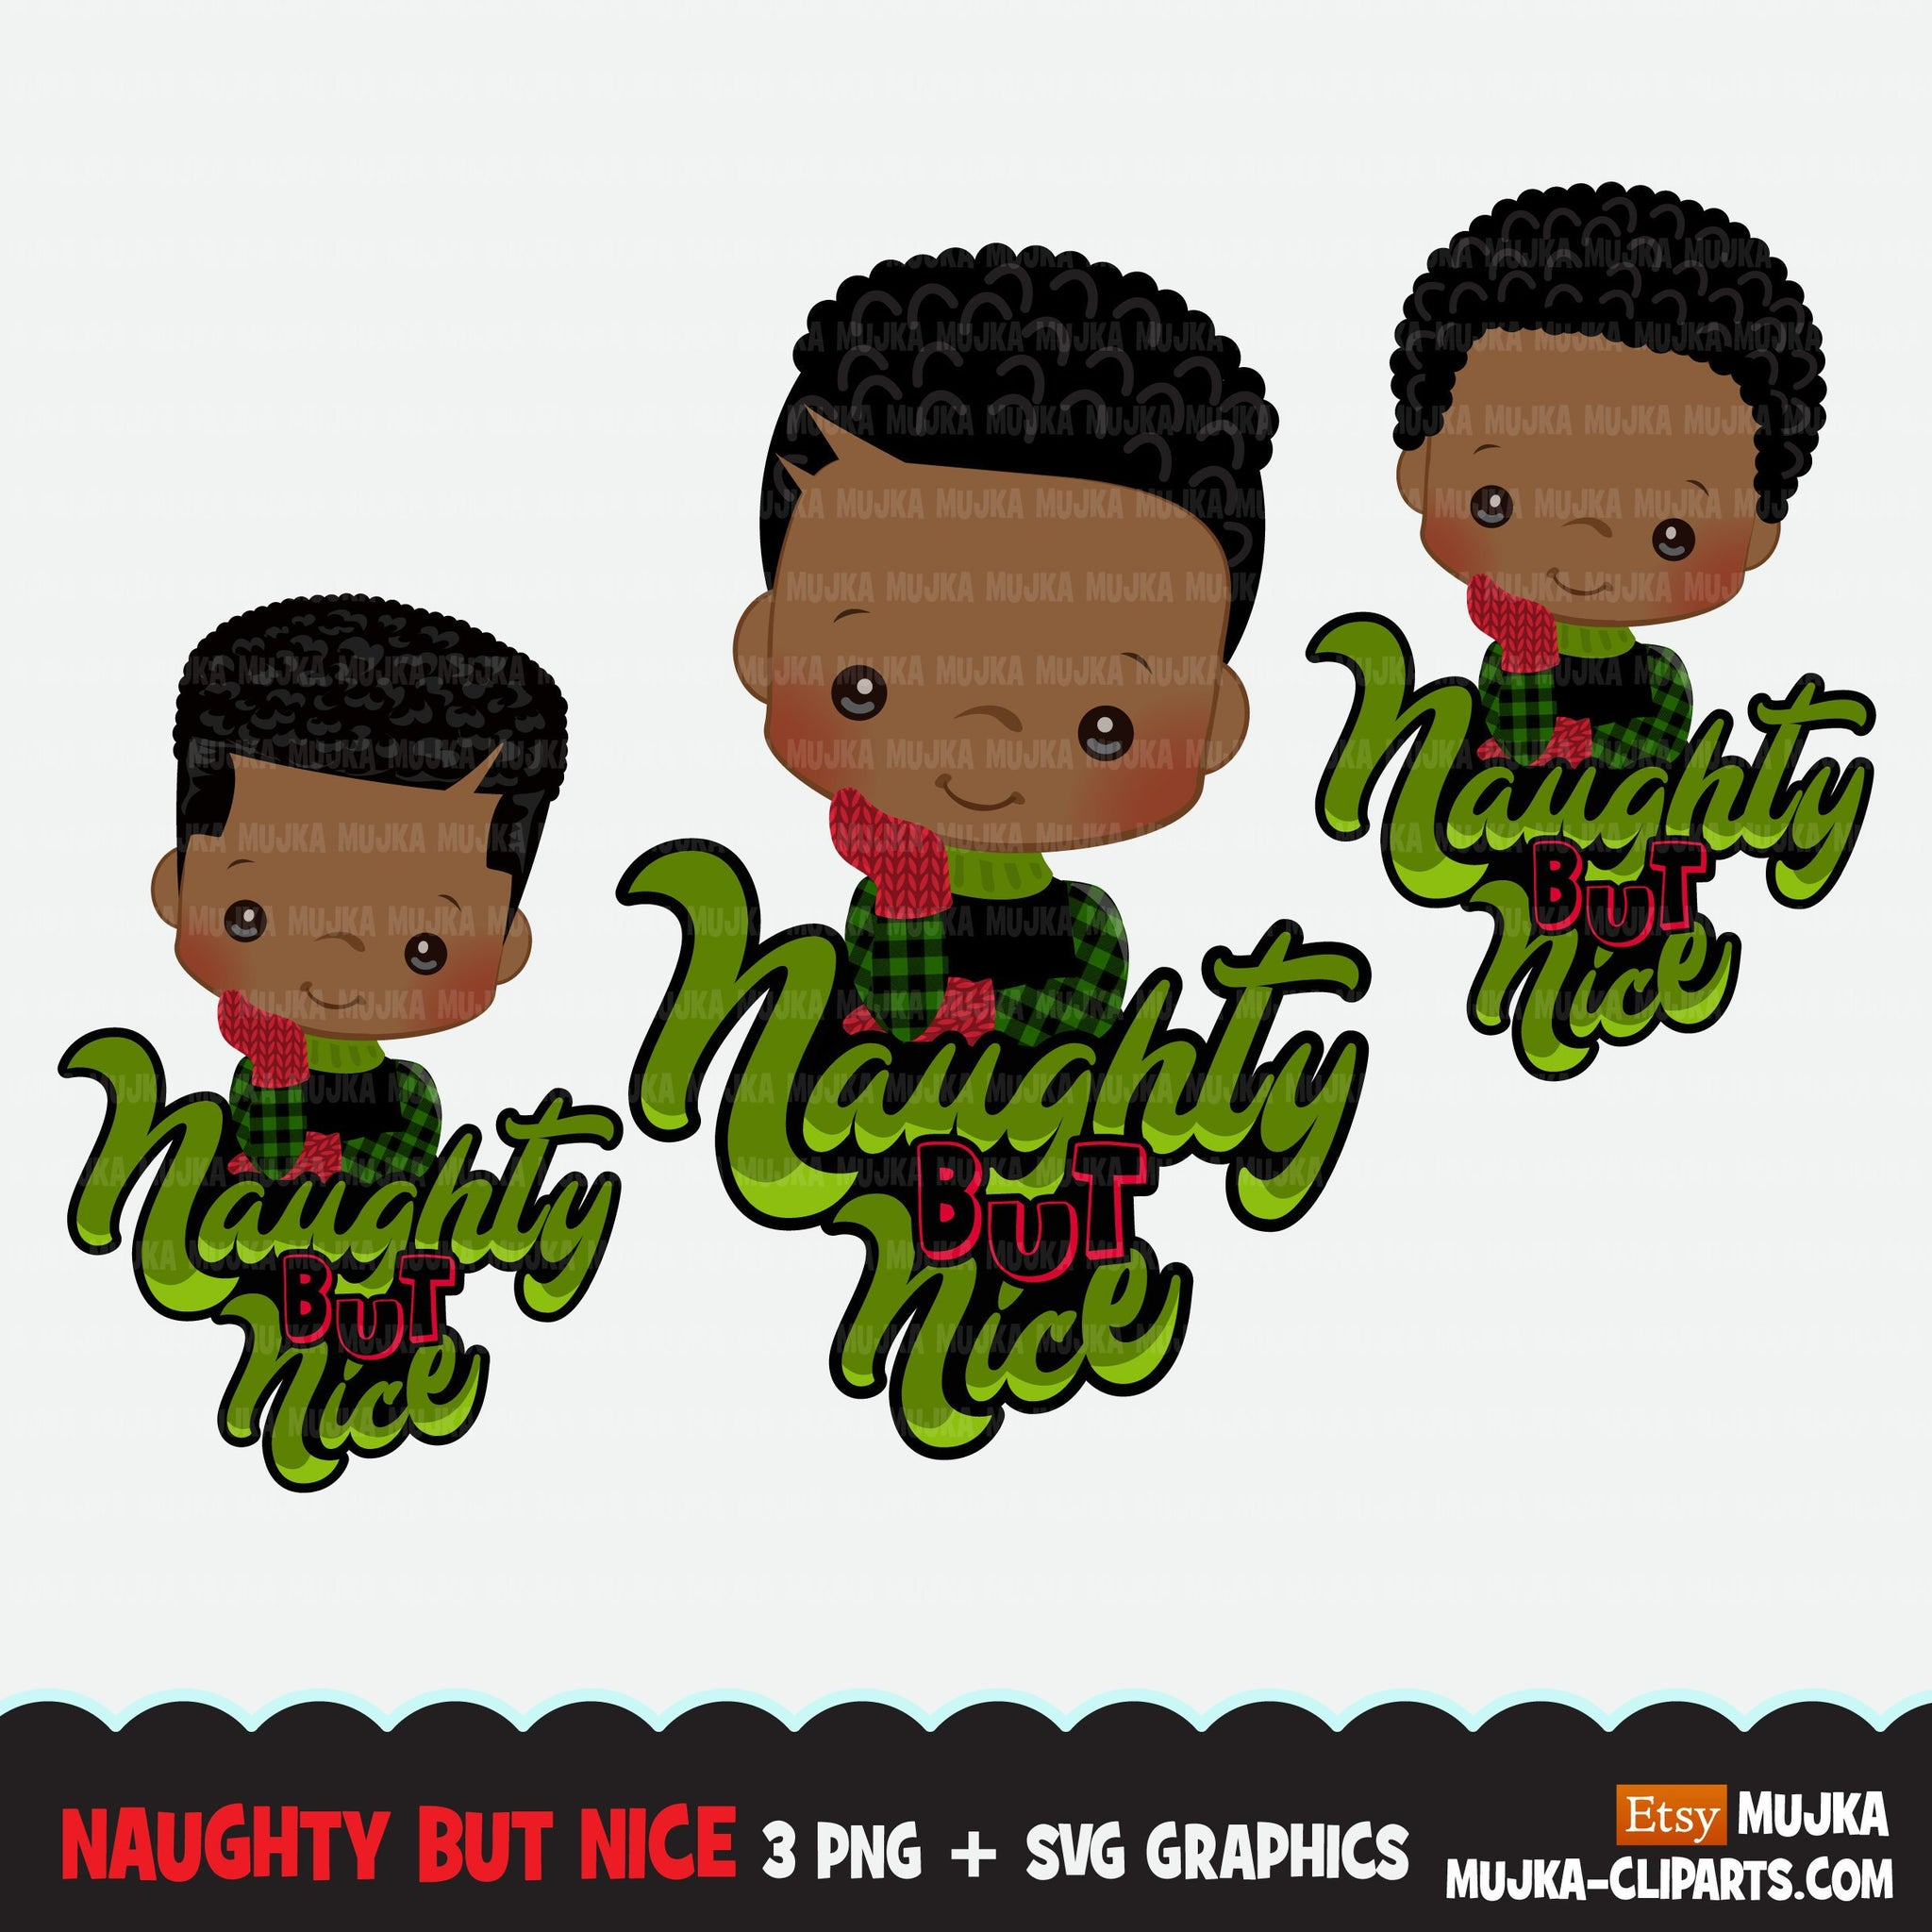 Christmas PNG digital, Naughty and Nice Printable HTV sublimation image transfer clipart, t-shirt Afro black boy graphics